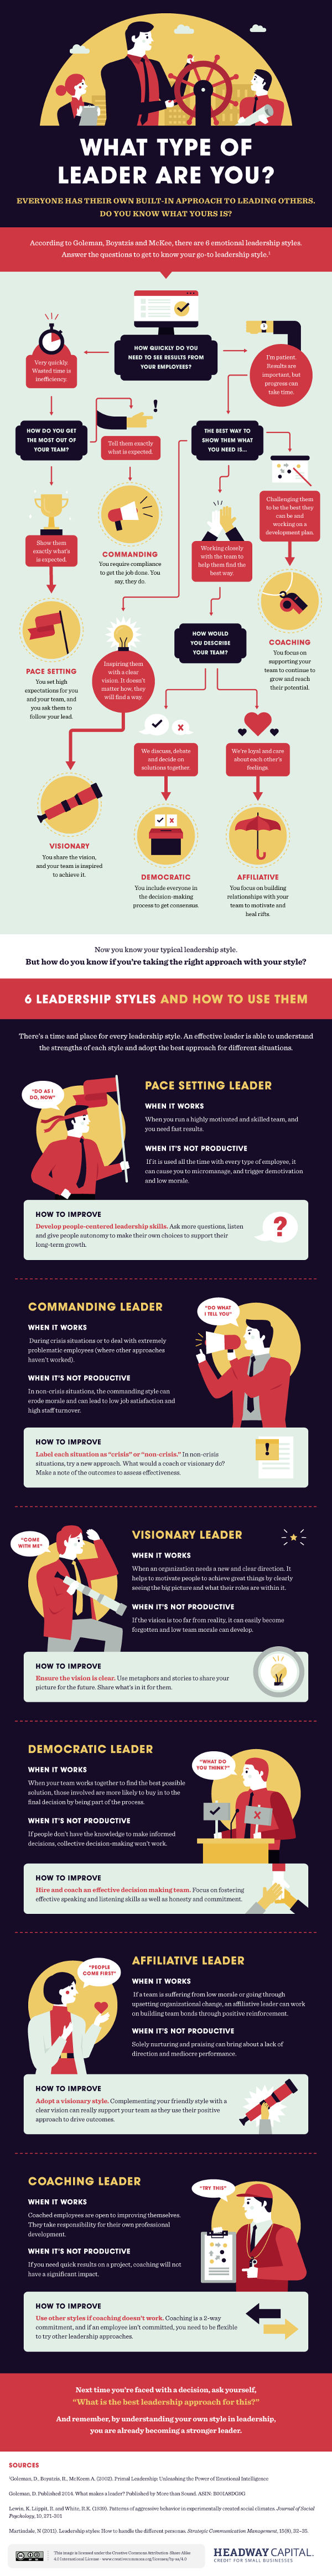 Career Management - What Type of Leader Are You